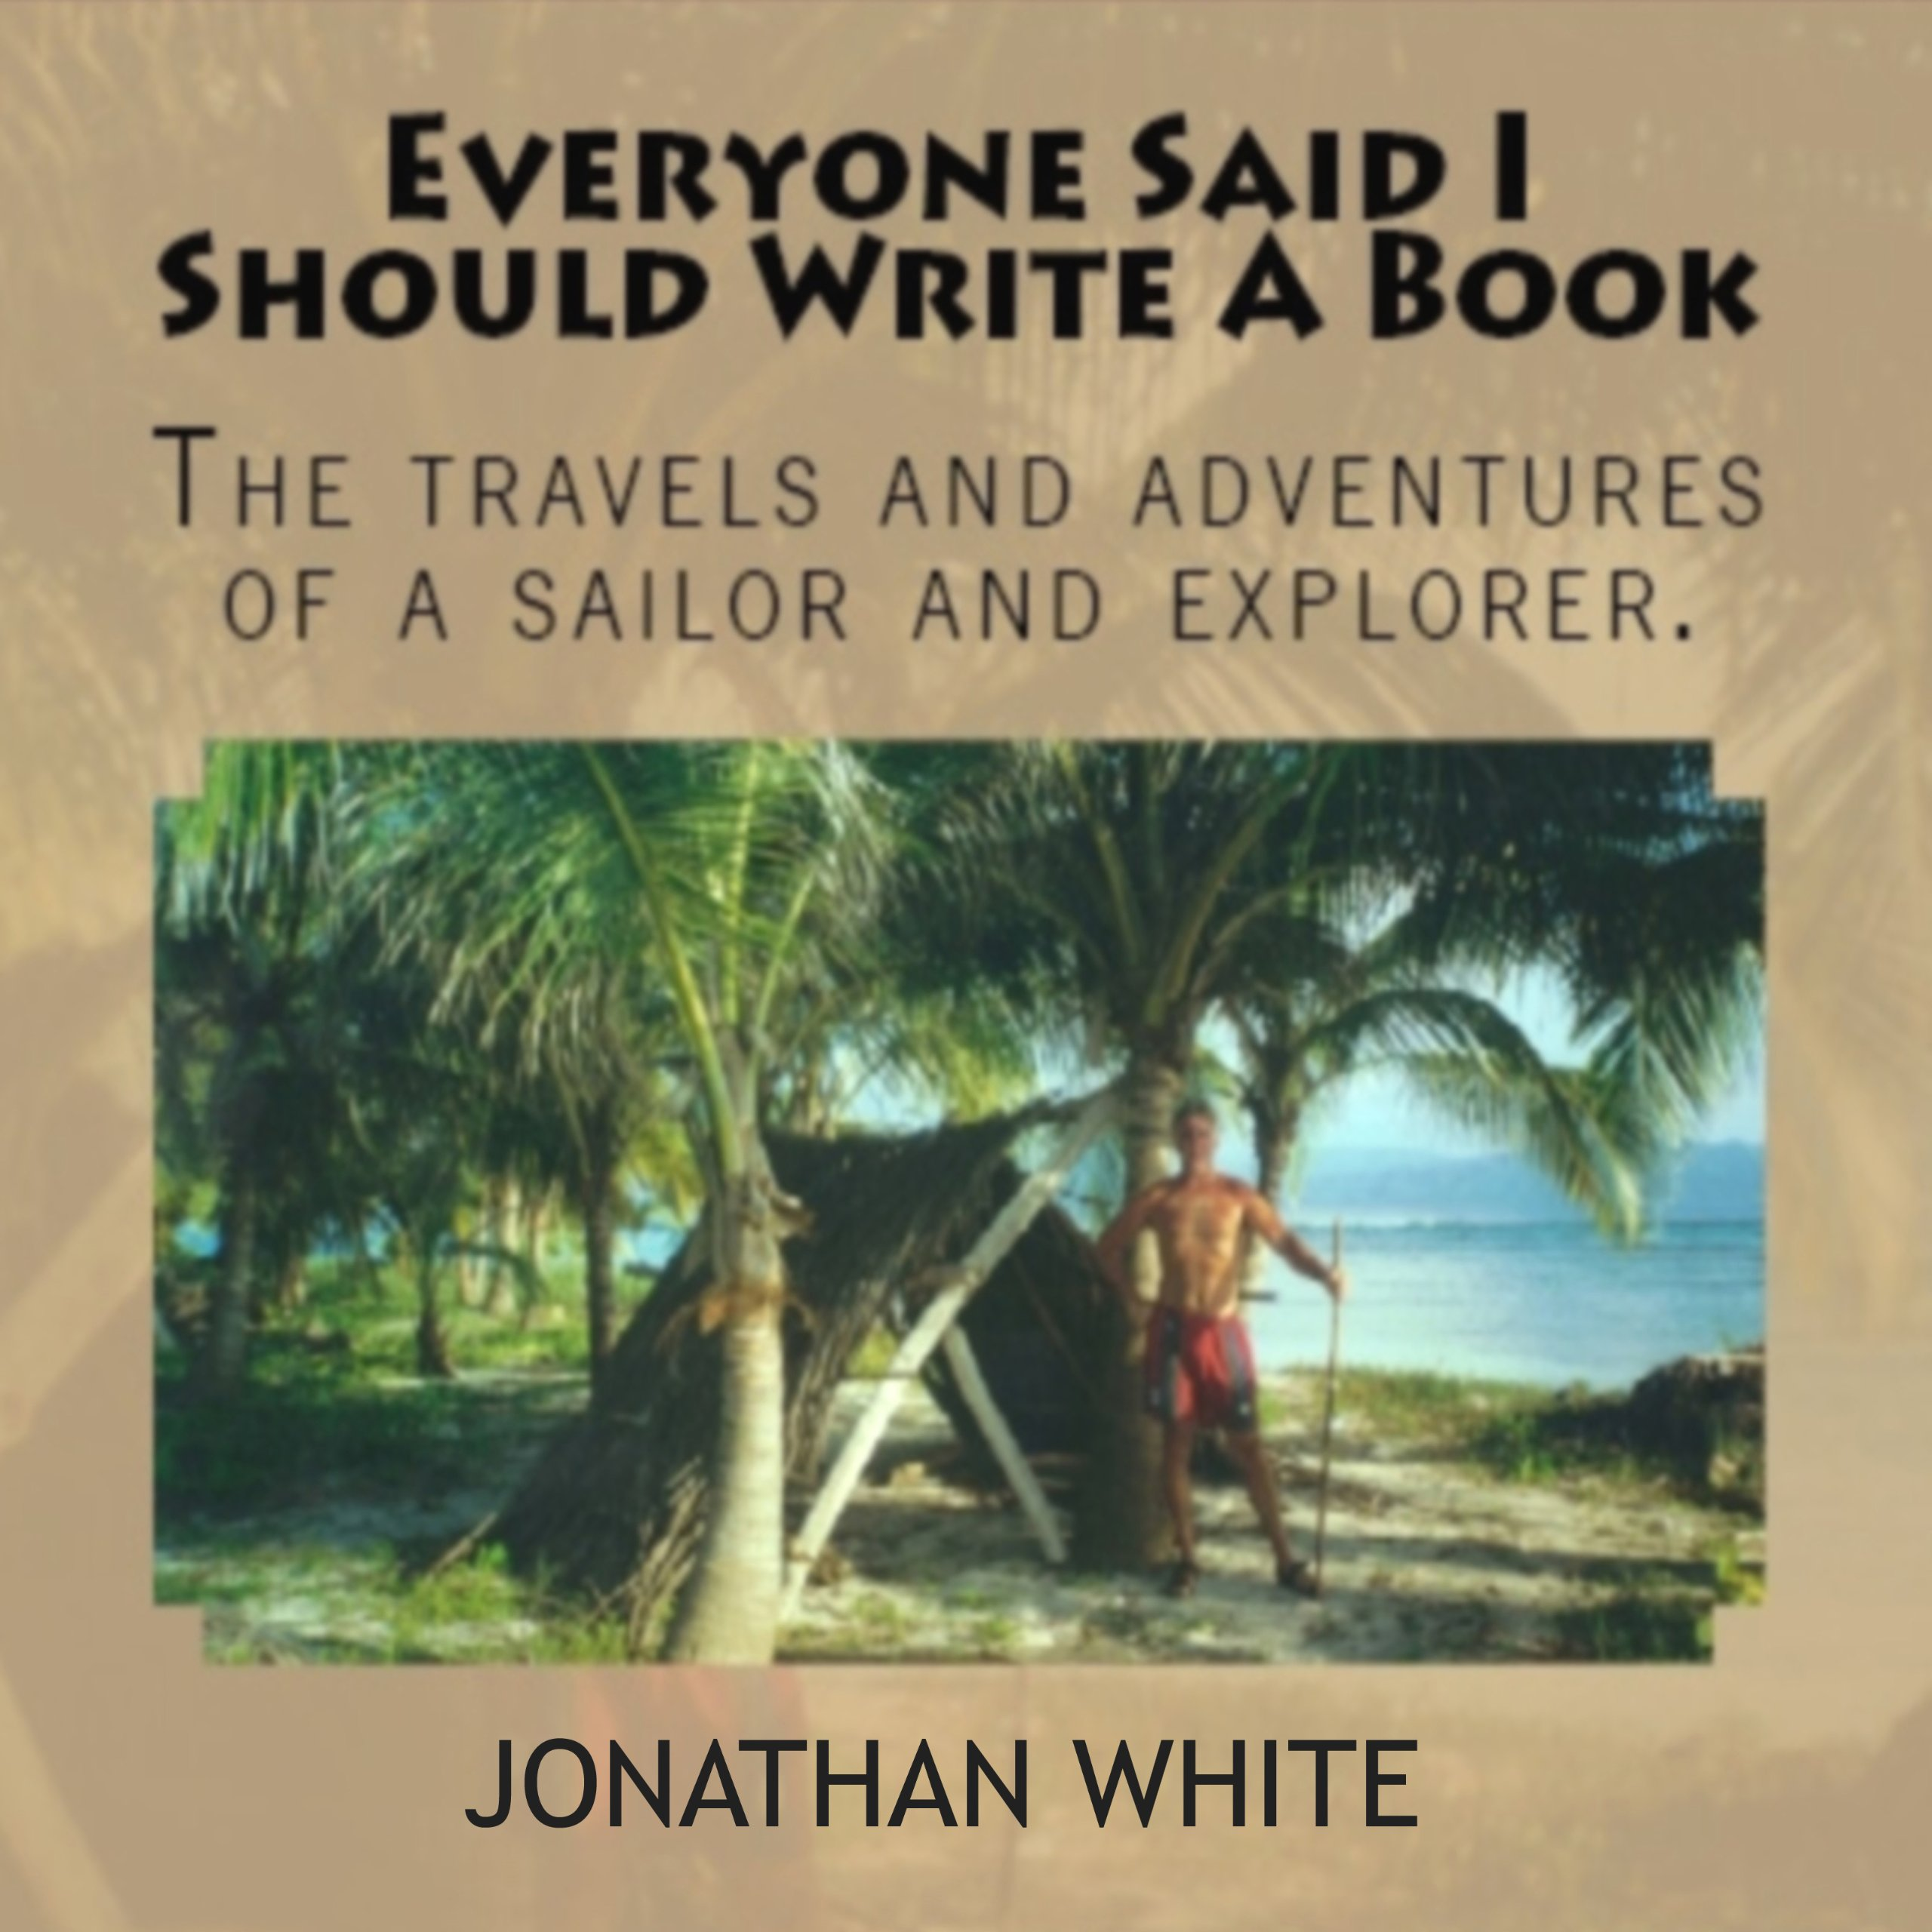 Everyone Said I Should Write a Book: The Travels and Adventures of a Sailor and Explorer